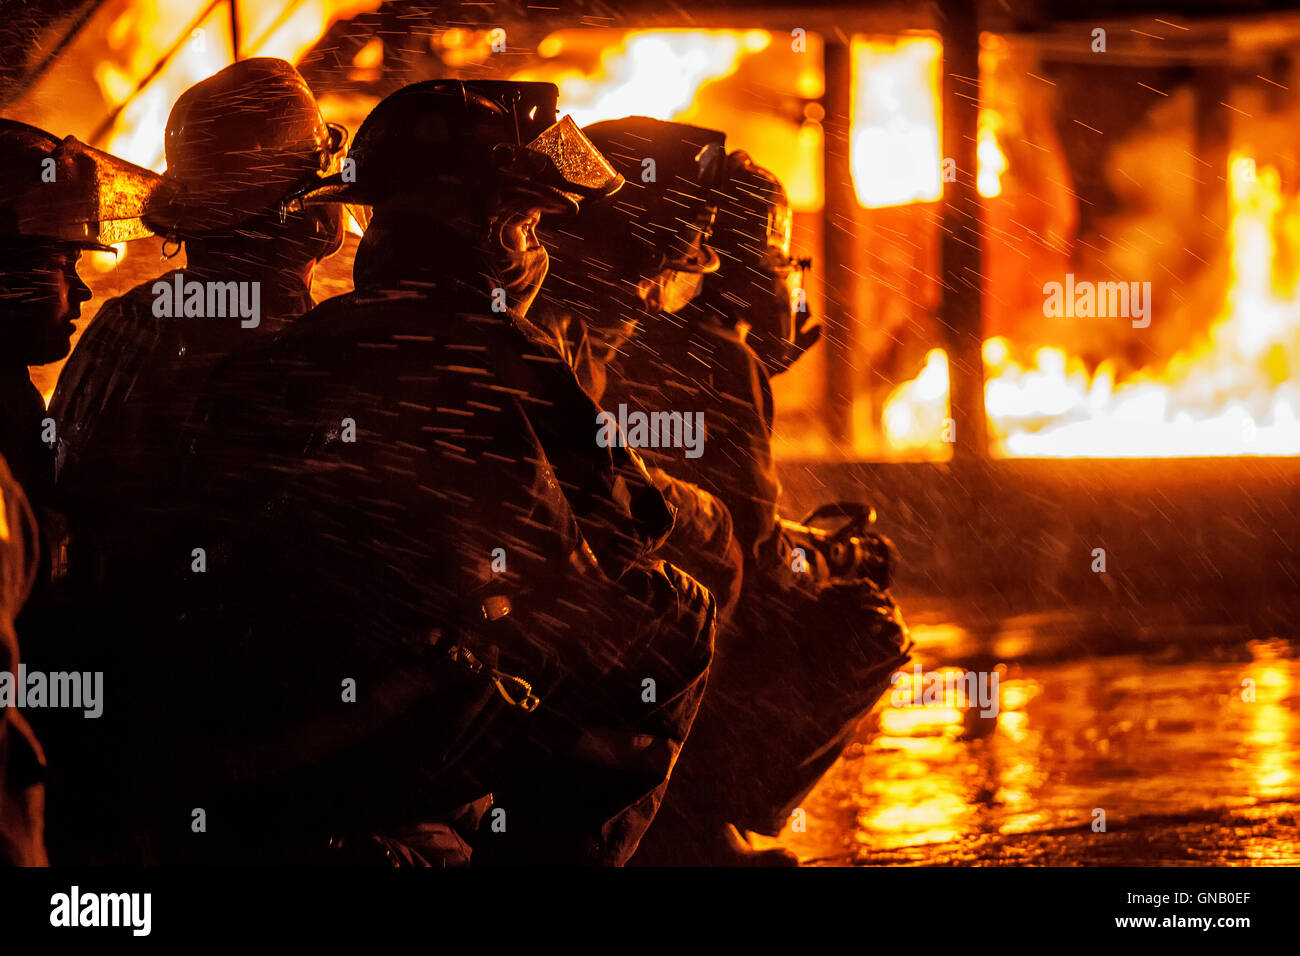 Group of firefighters observing fire - Stock Image